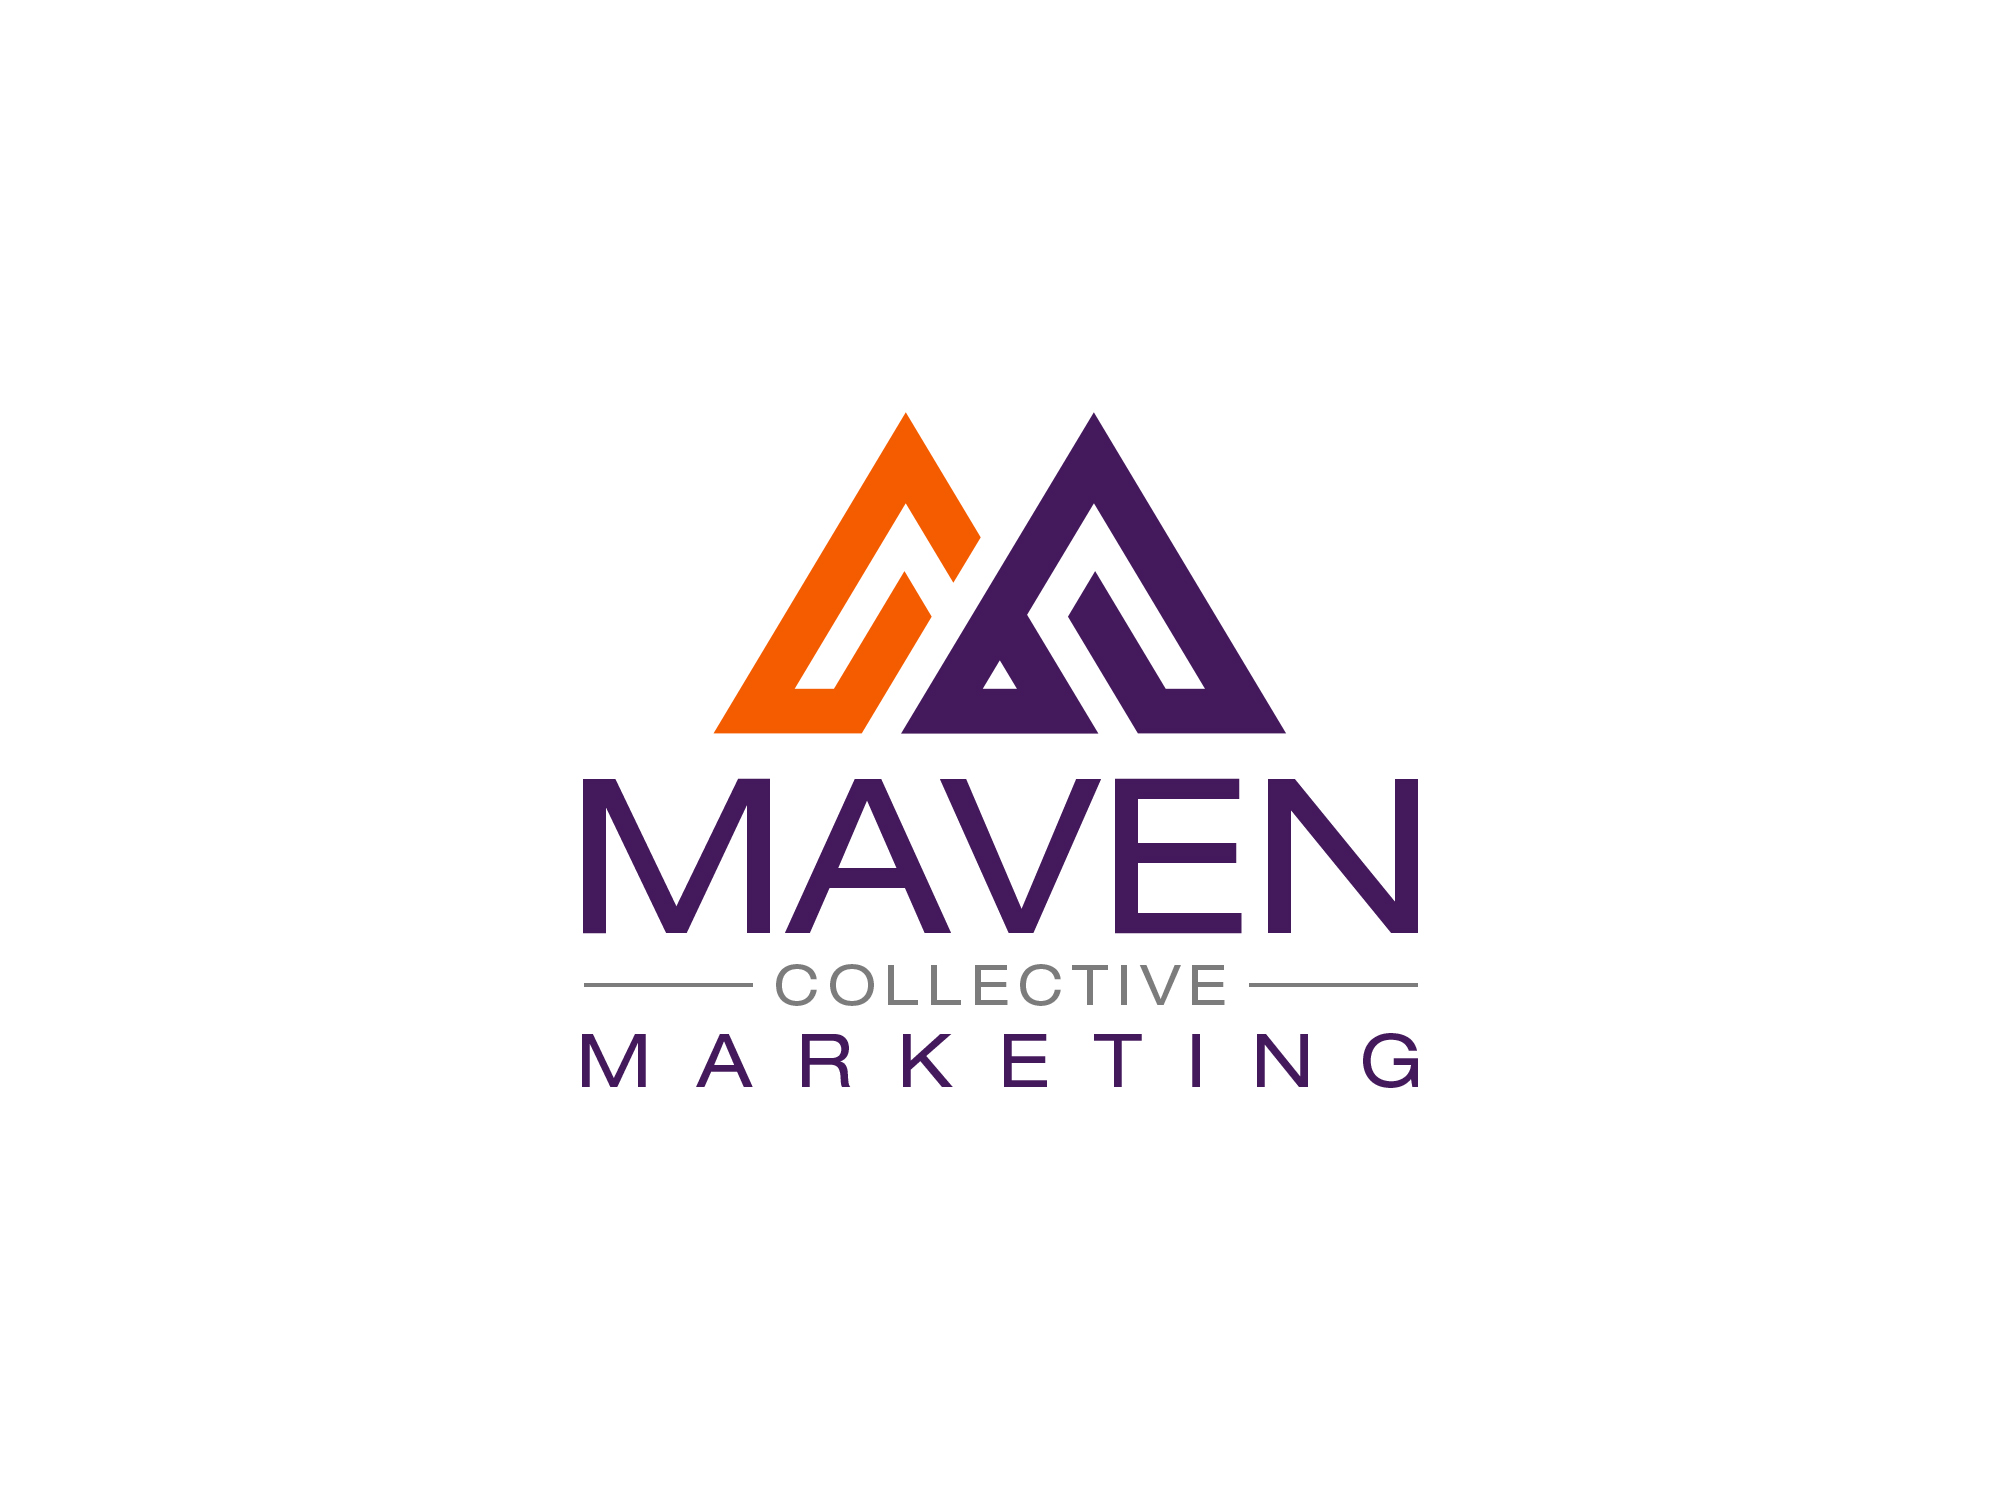 Maven-Logo-purple-orange.jpg